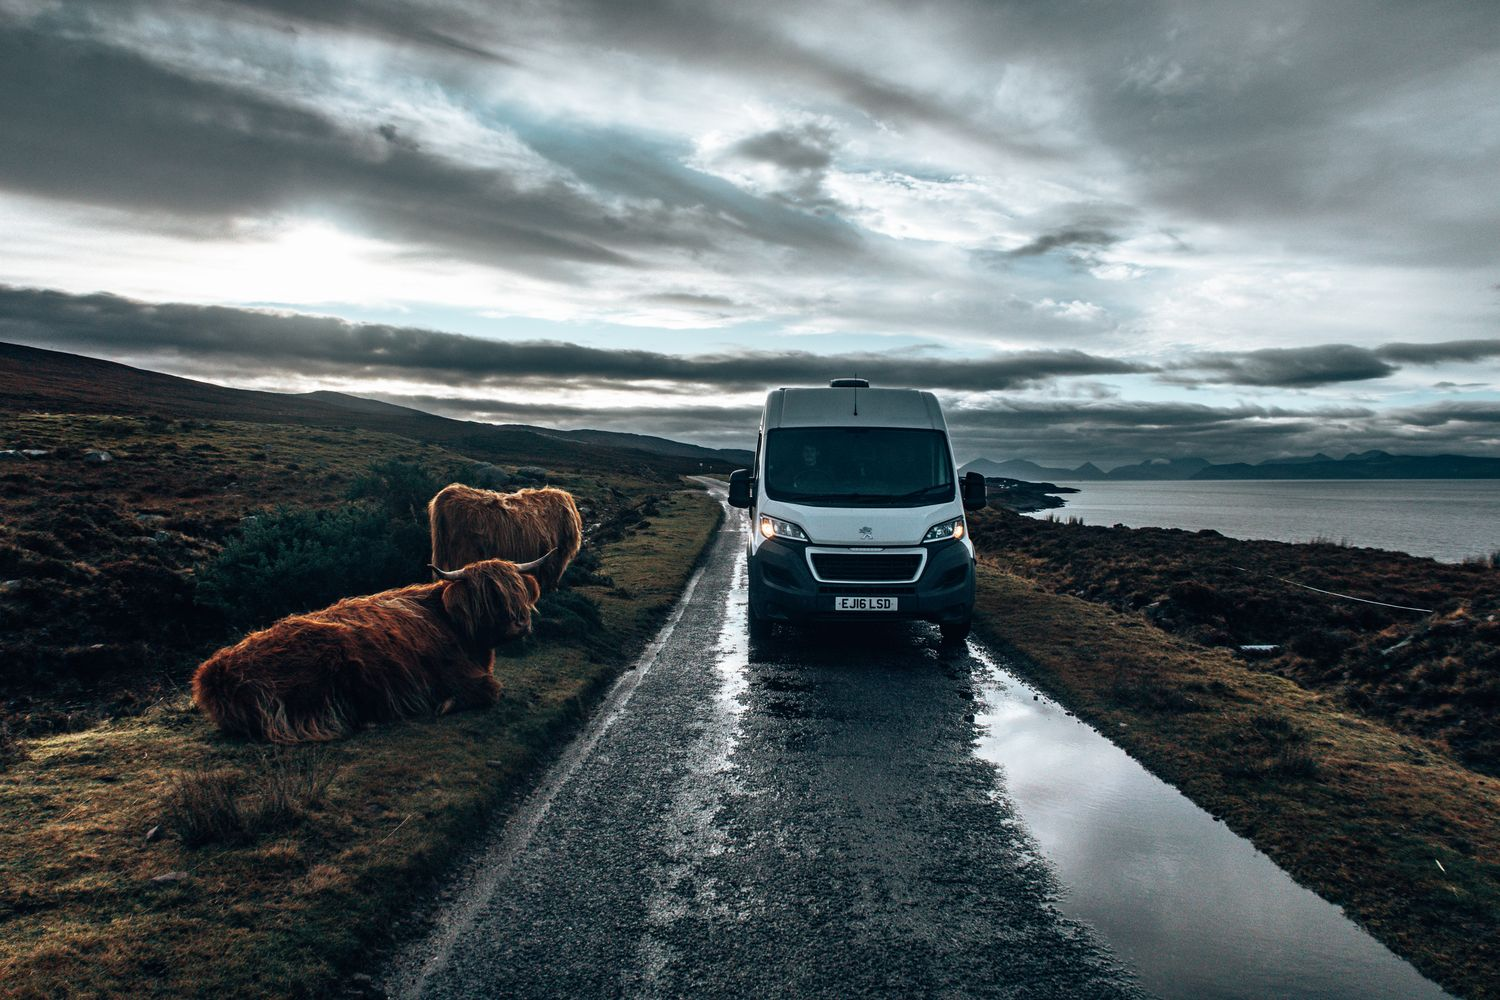 driving past Highland cows